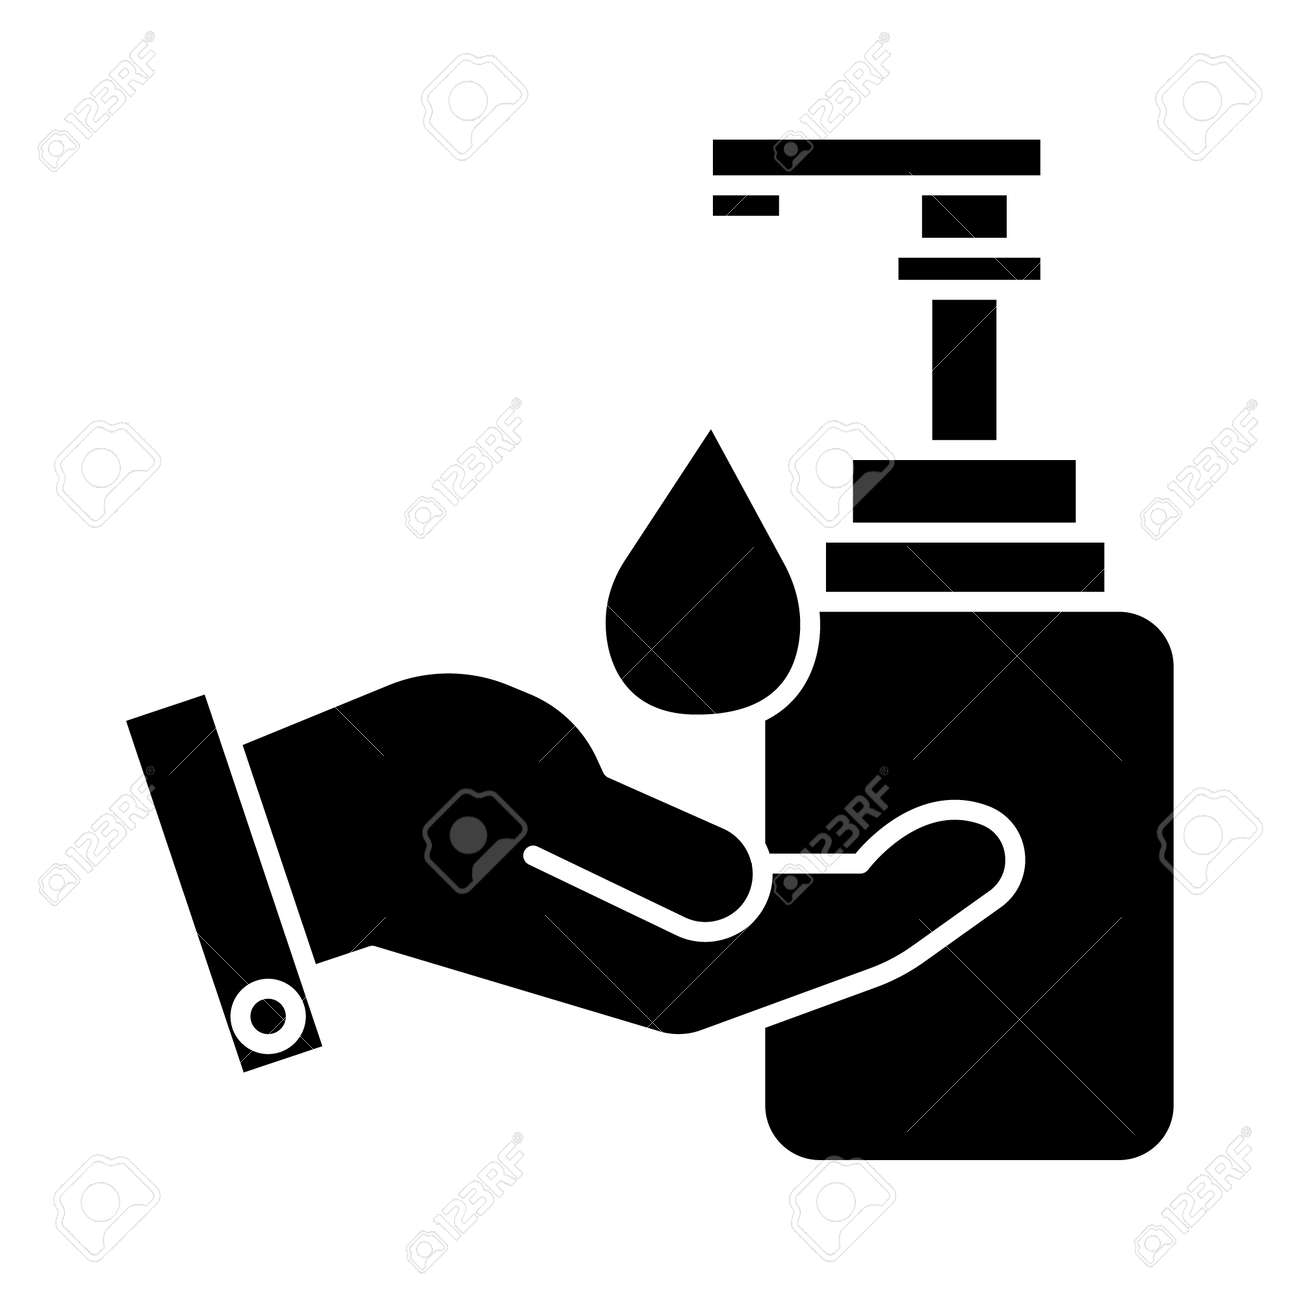 liquid soap with hand icon, illustration, vector sign on isolated background - 88103641